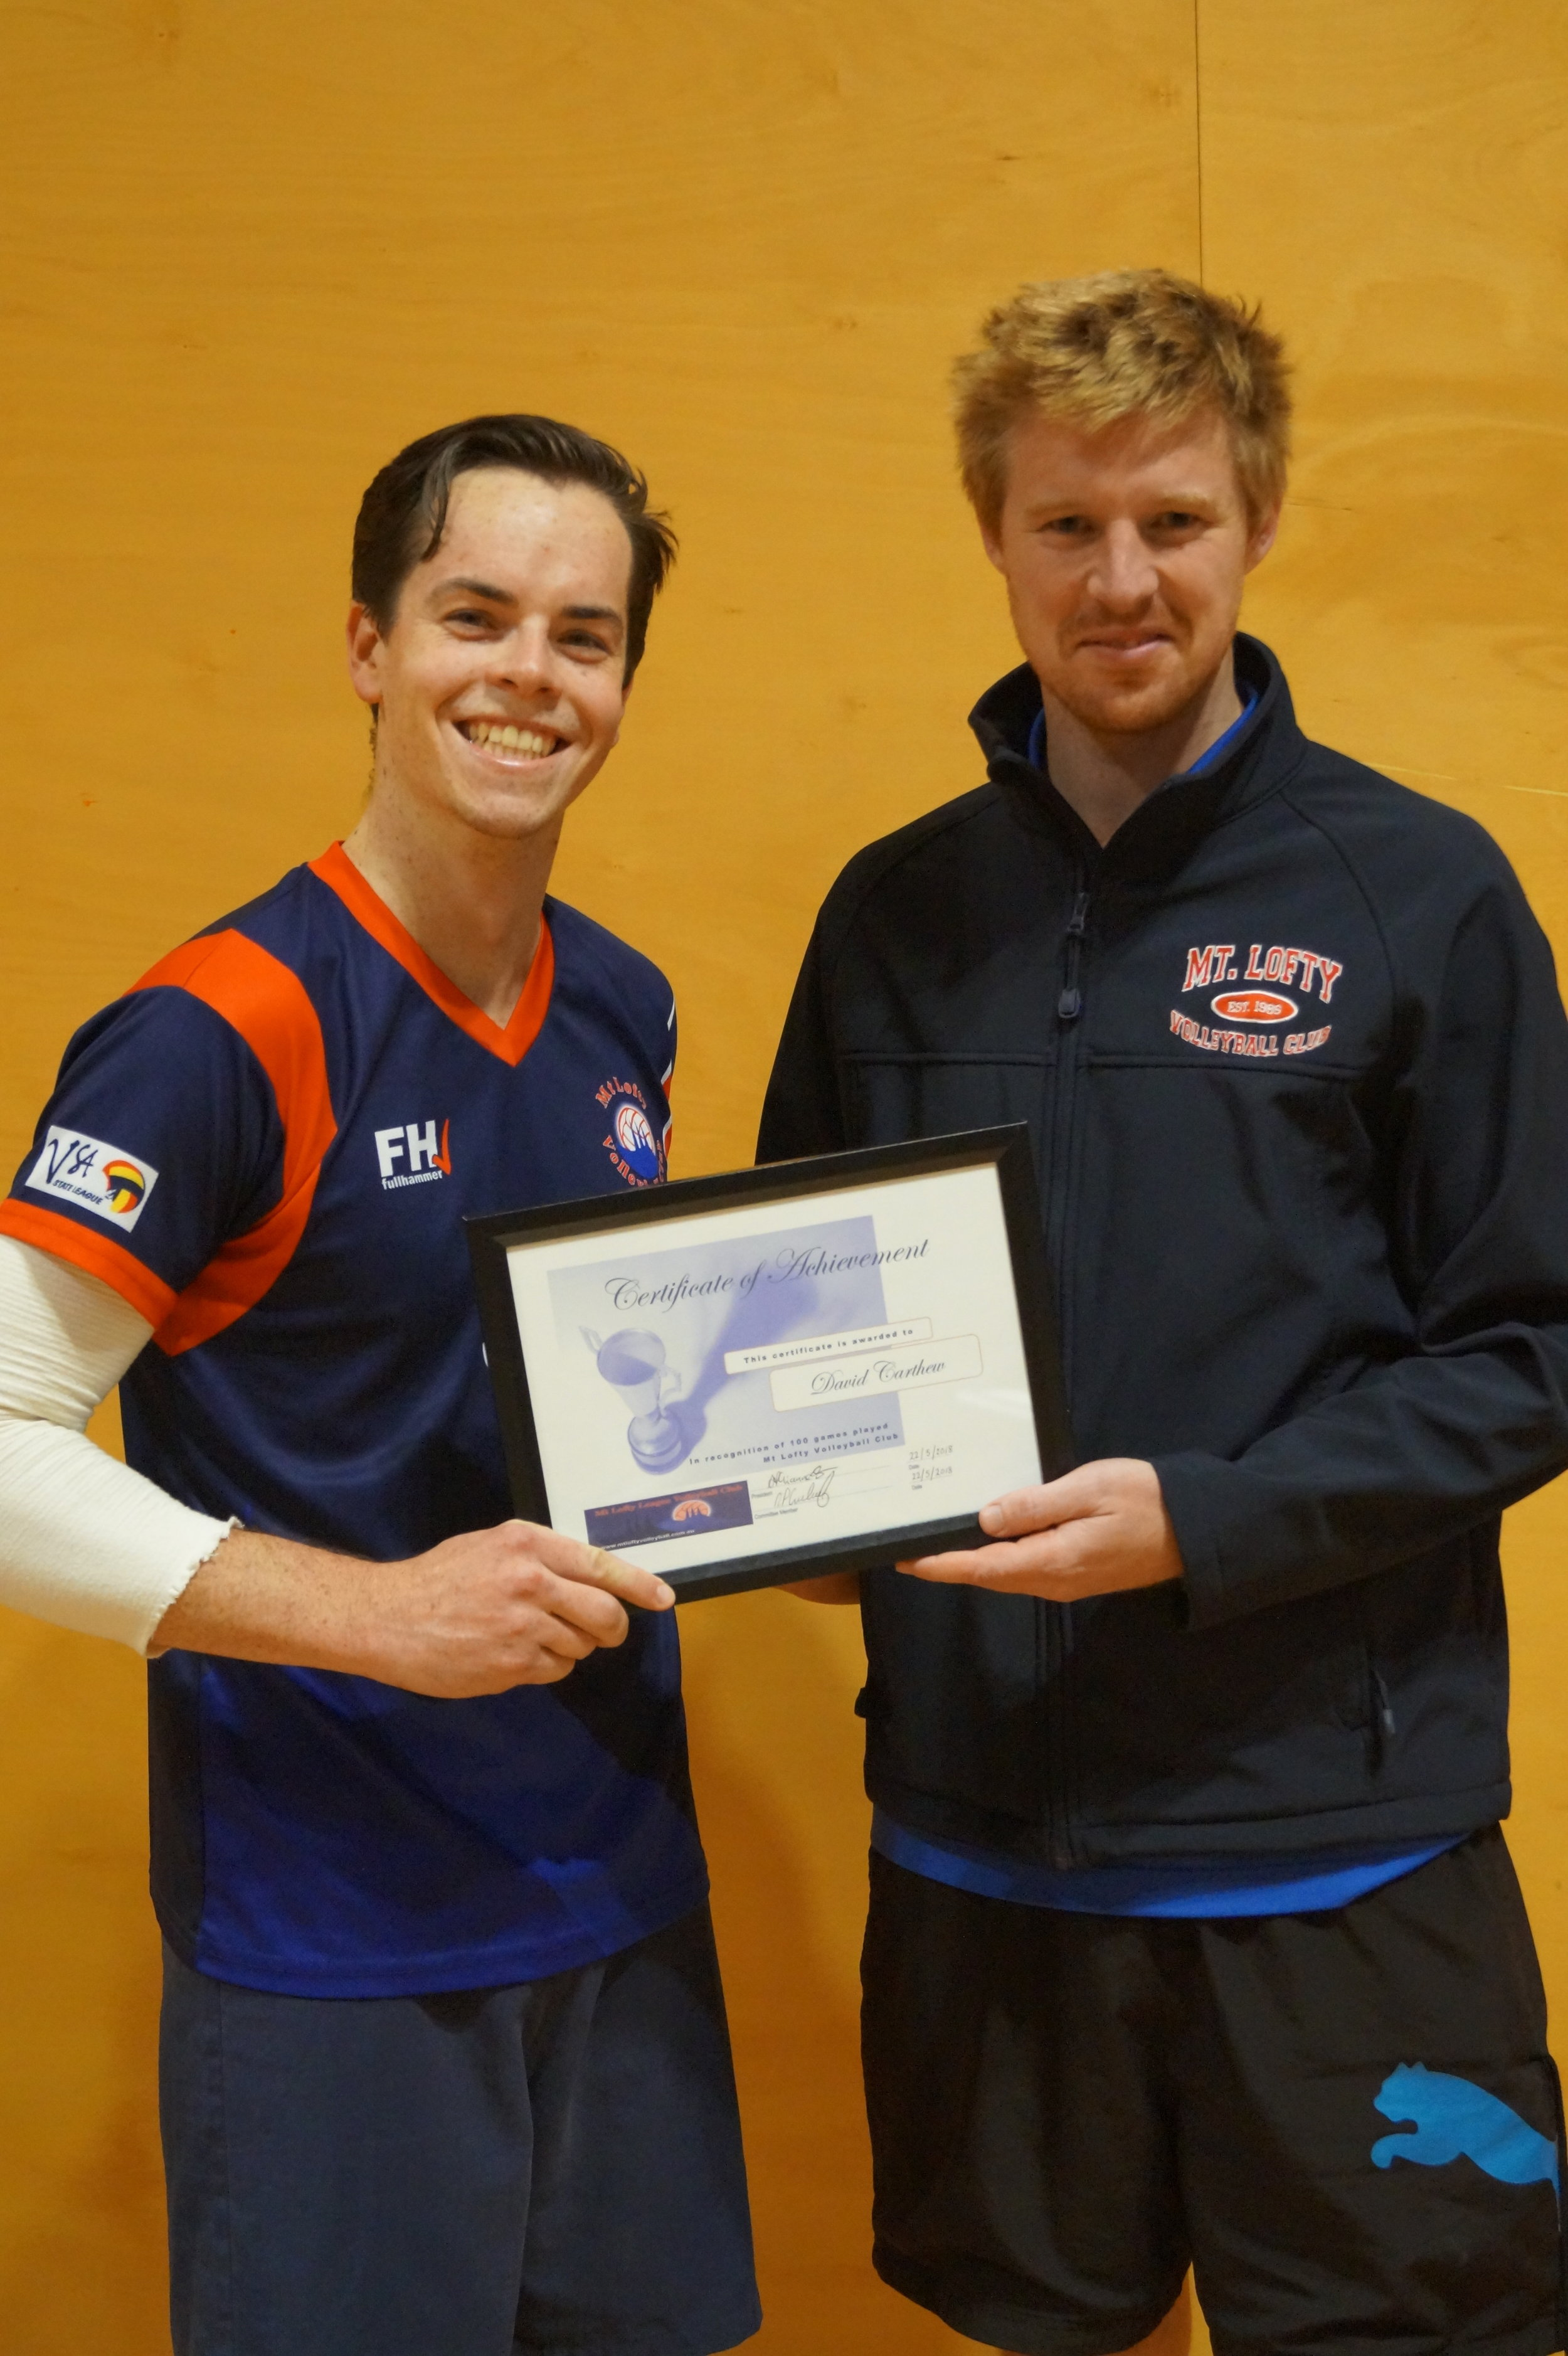 David gets his 100 game certificate from league reserve coach Aaron Kempe.